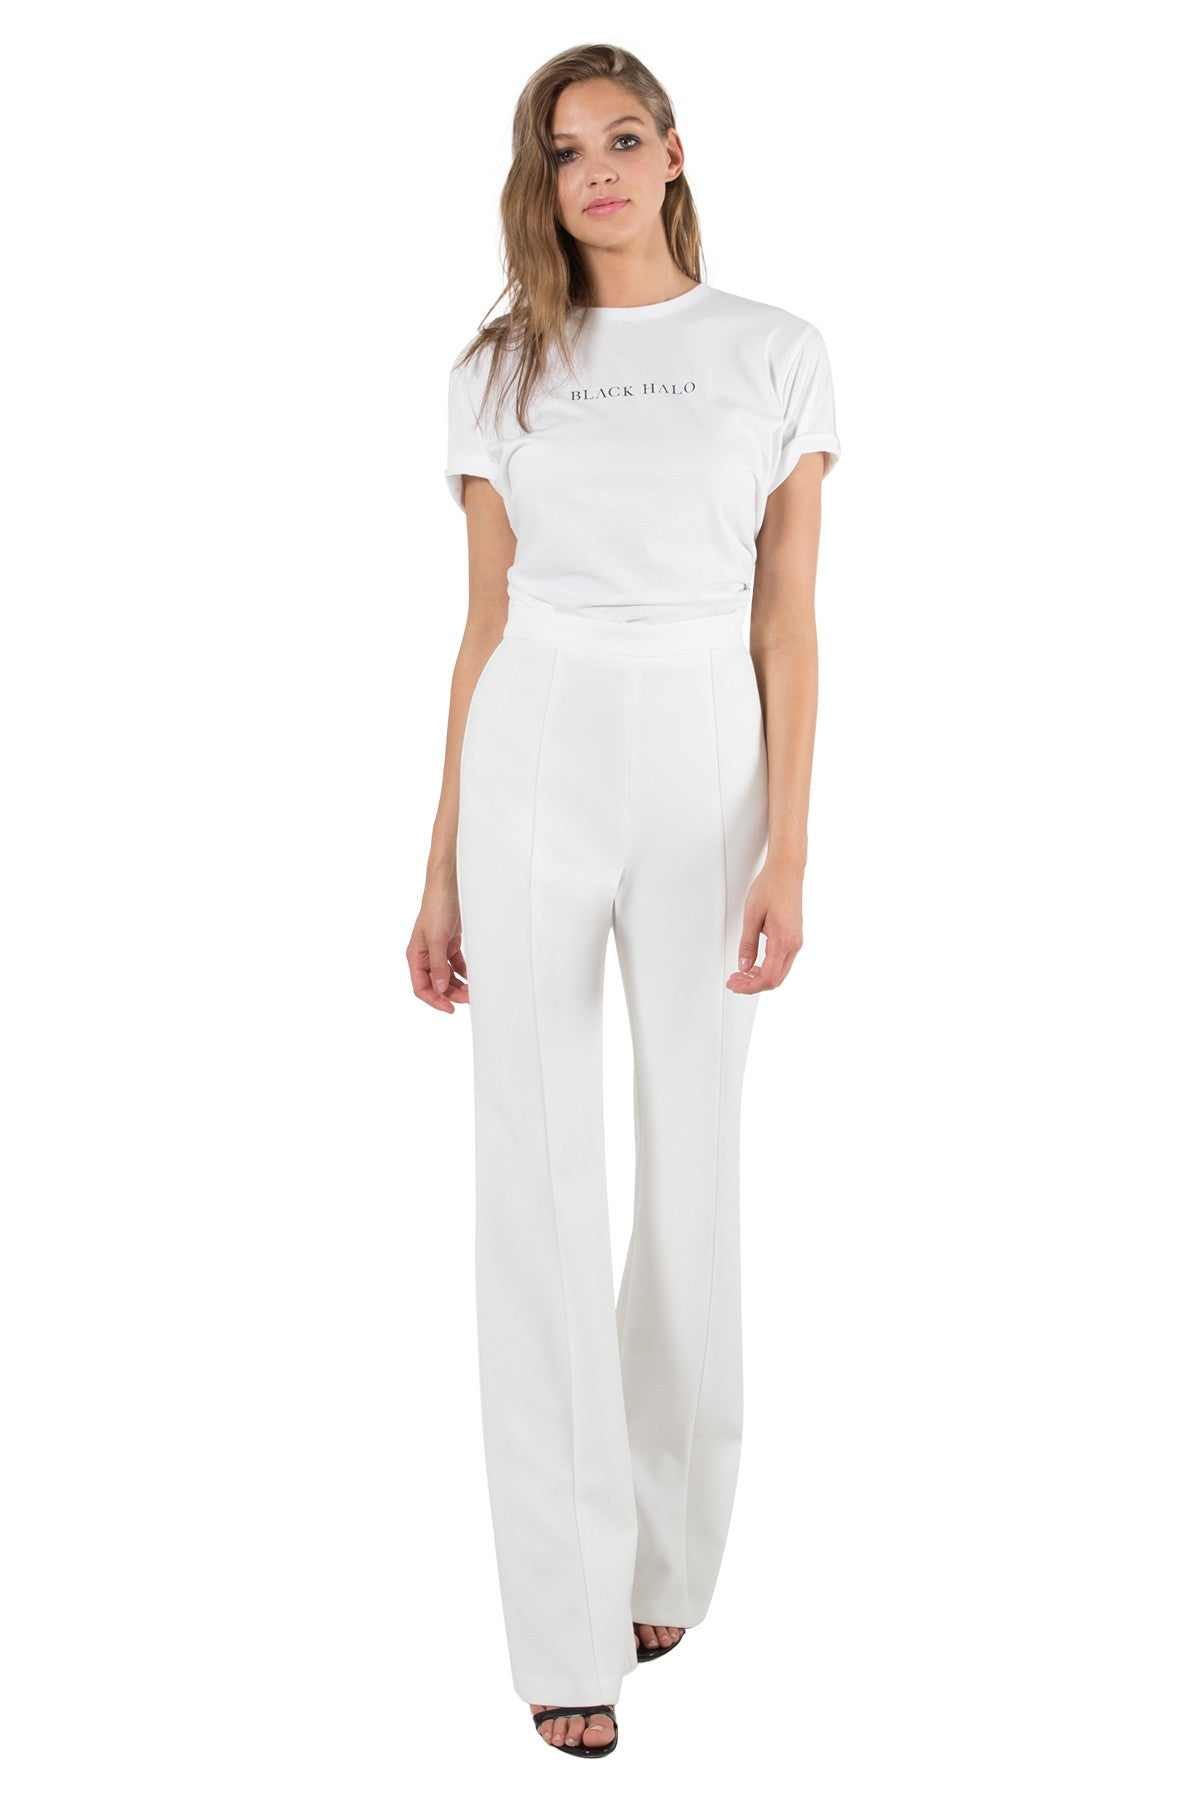 Black Halo Isabella Pant Porcelain White